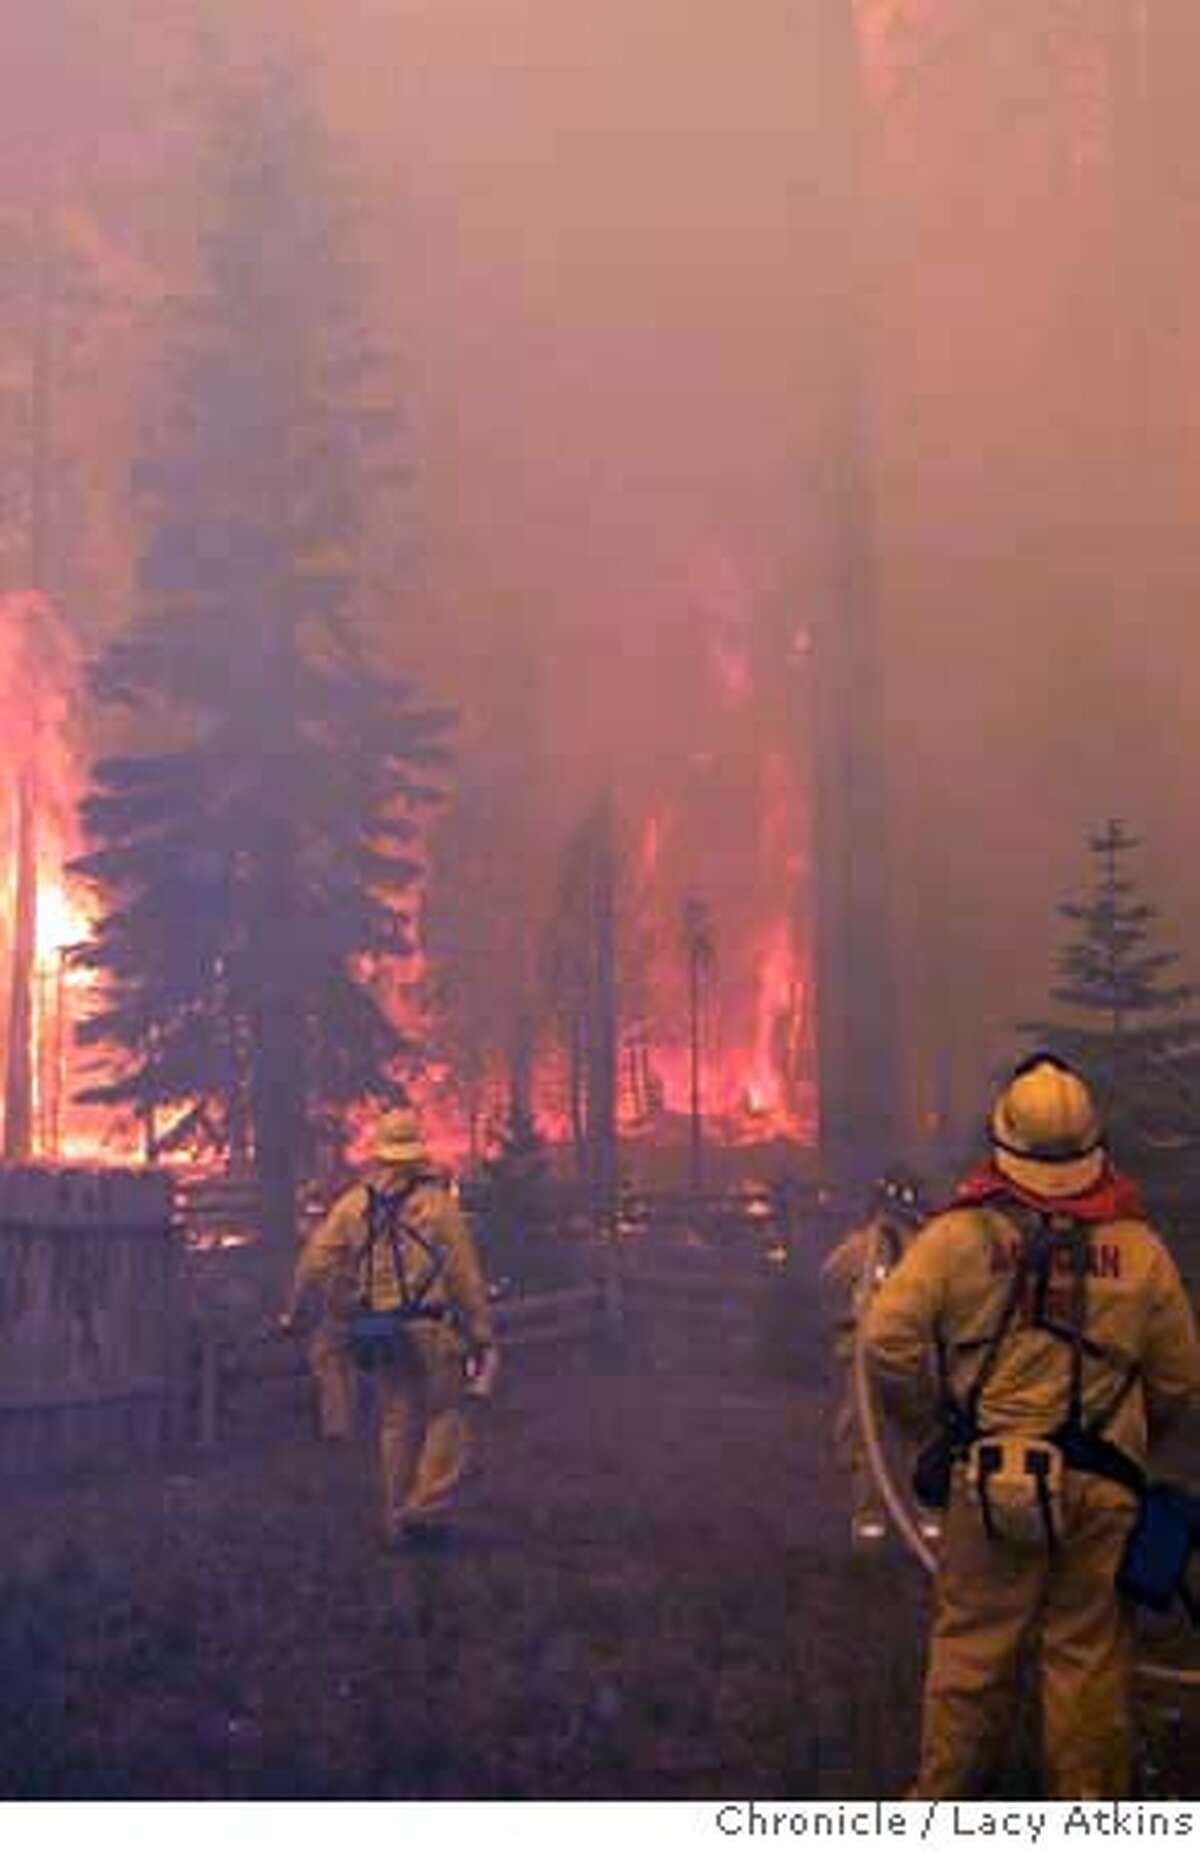 Firefighters watch as they try to control the fire, Tuesday June 26, 2007, in South Lake Tahoe, Ca. (Lacy Atkins / San Francisco Chronicle)